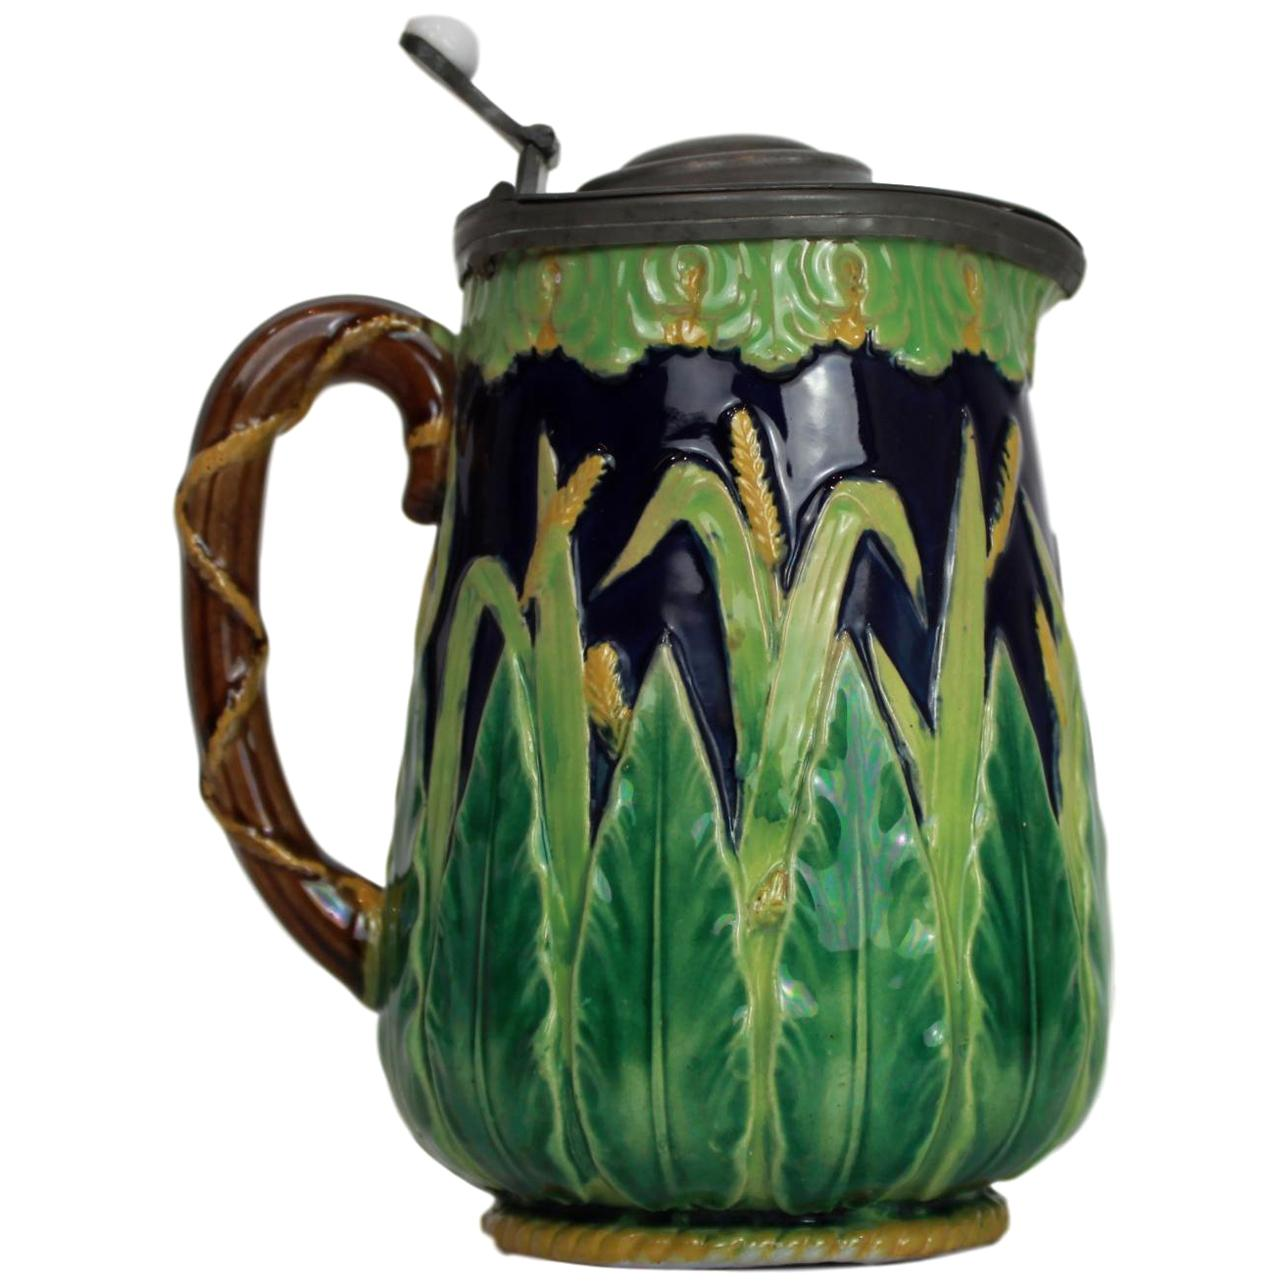 George Jones Majolica Cobalt Blue Wheat Pitcher with Pewter Lid, English